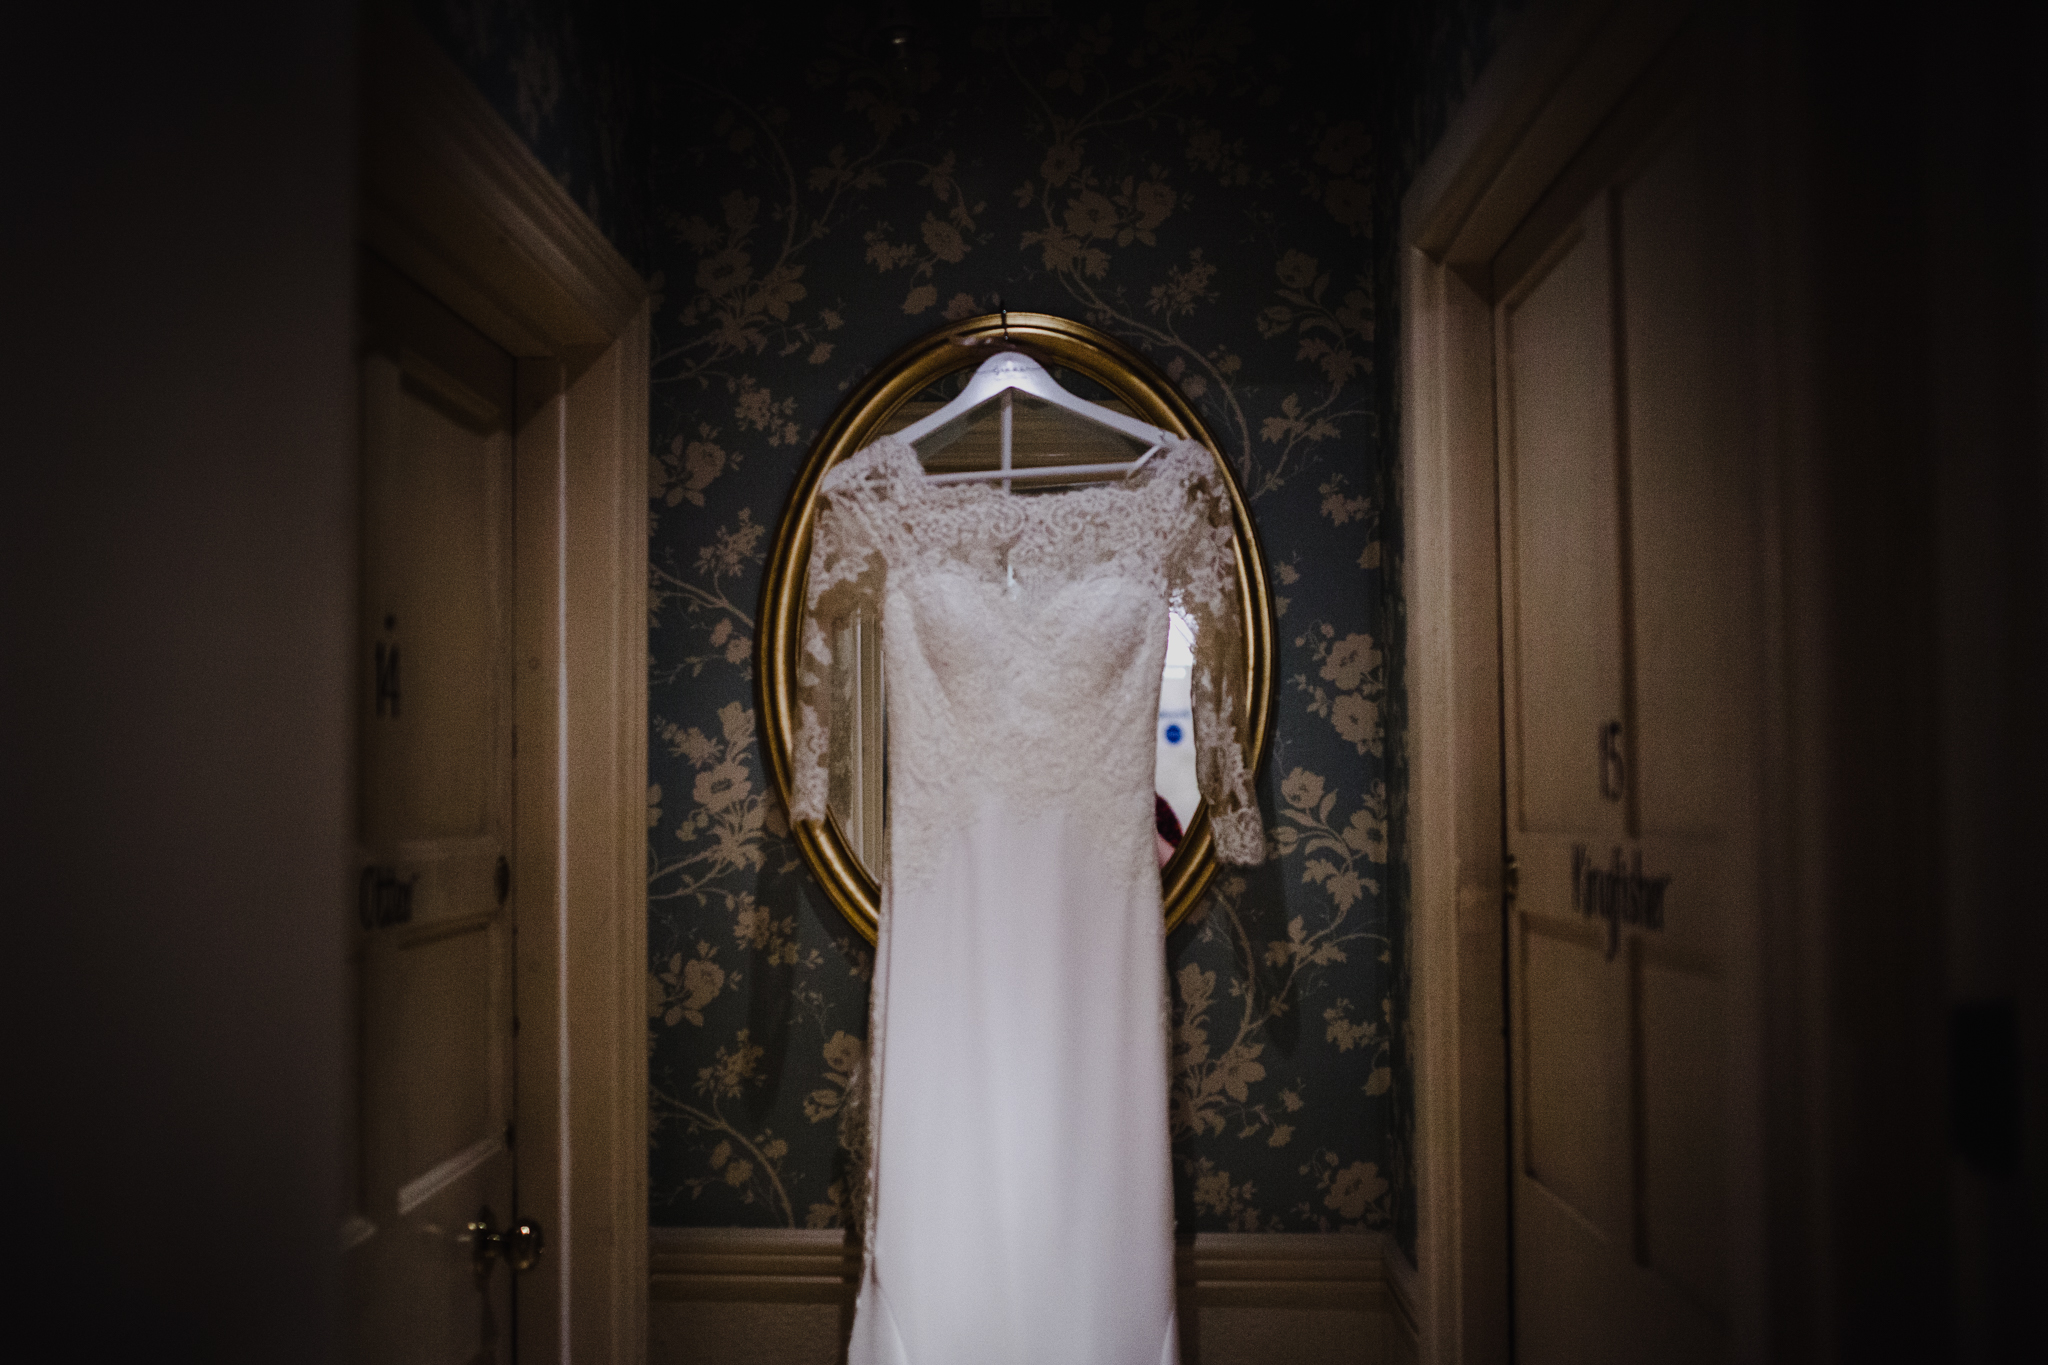 Copy of Wedding dress hanging on mirror with patterned wallpaper